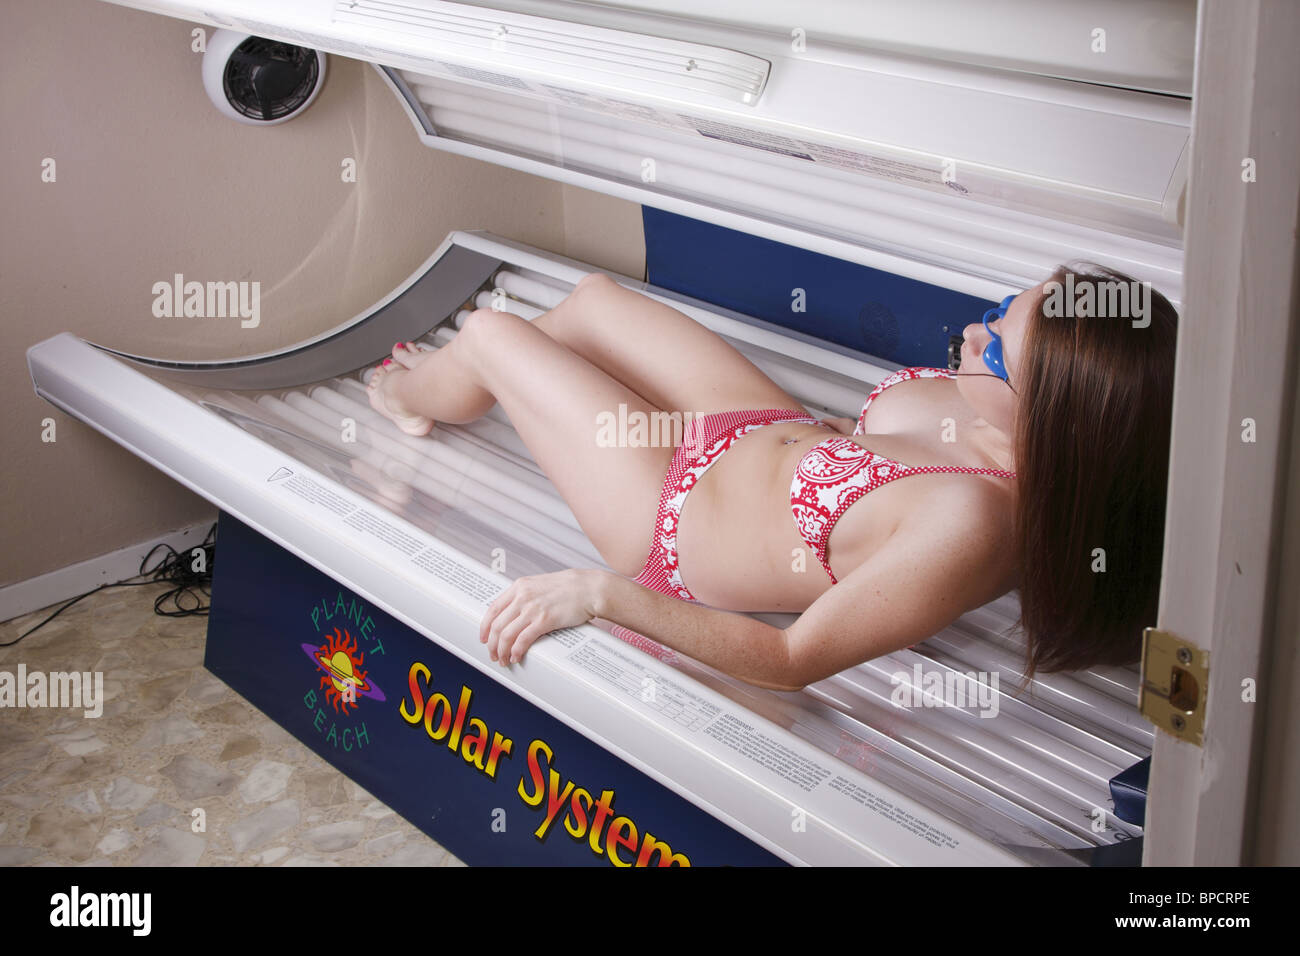 Russian teen tanning bed